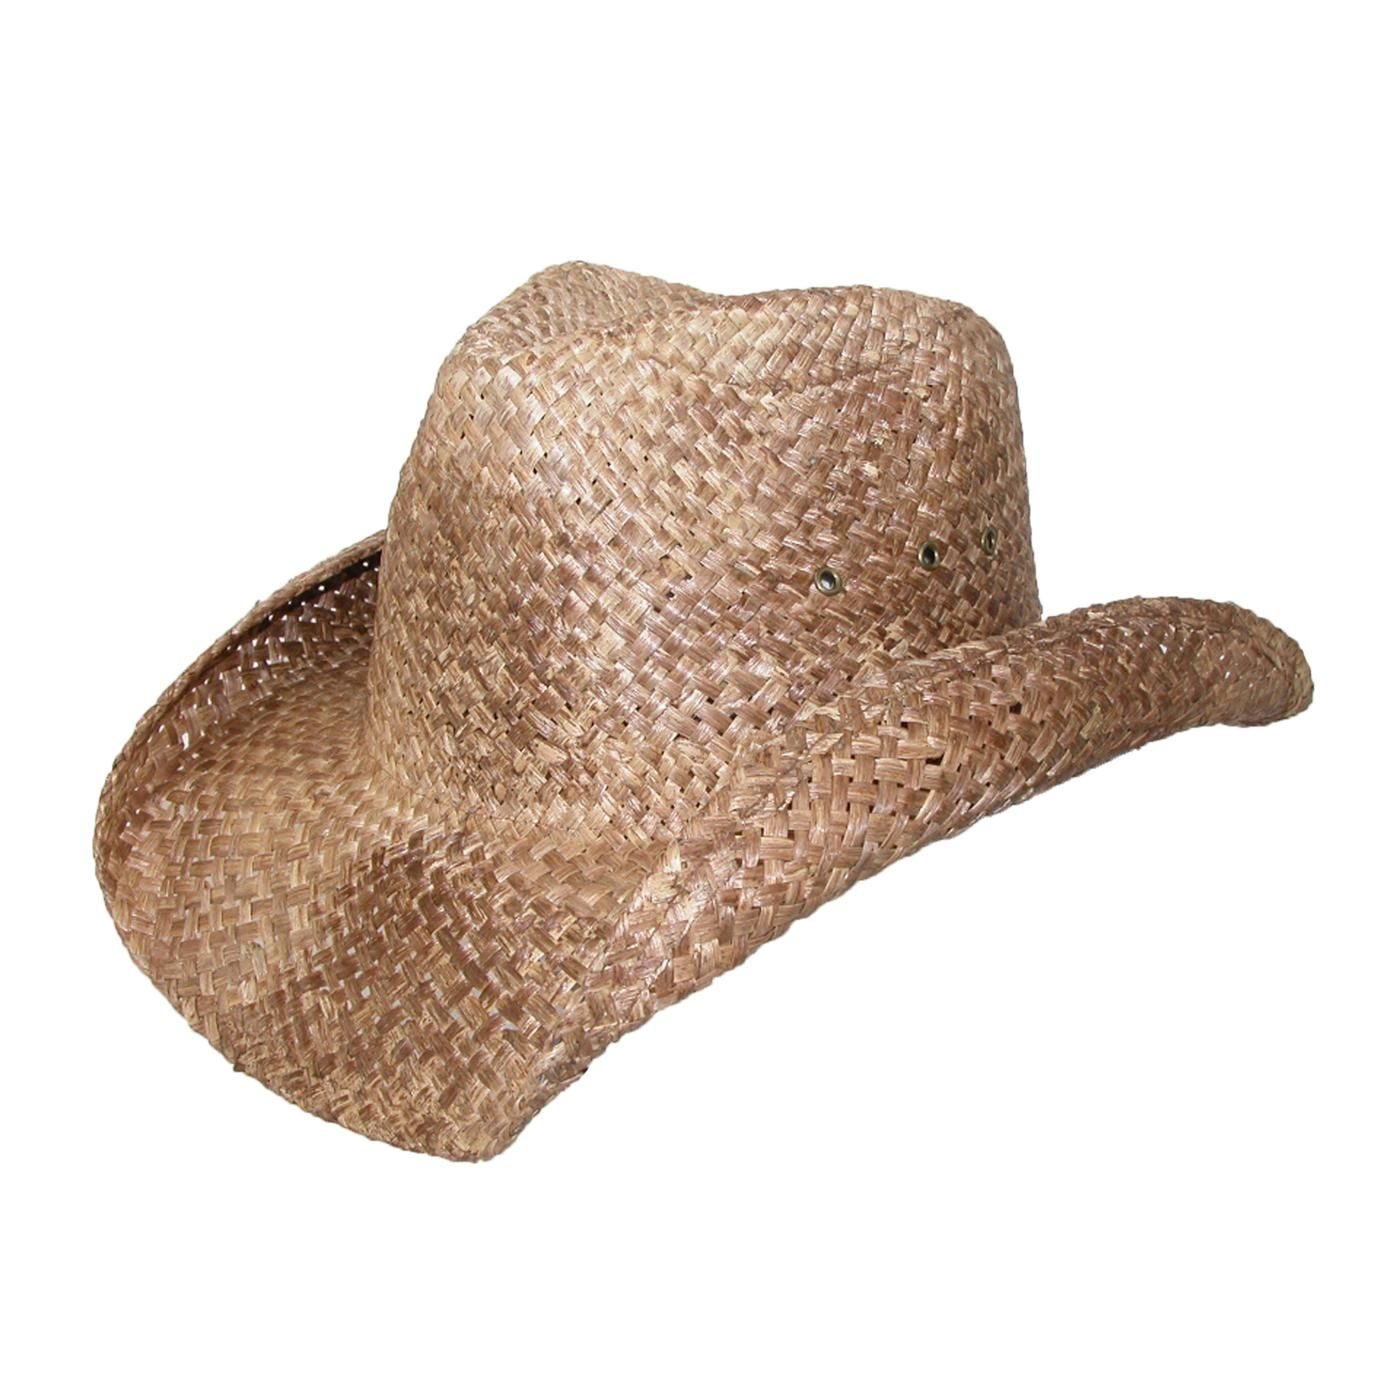 7e00014f532ac Straw Cowboy Hat for Men Women. Distressed straw  22.95